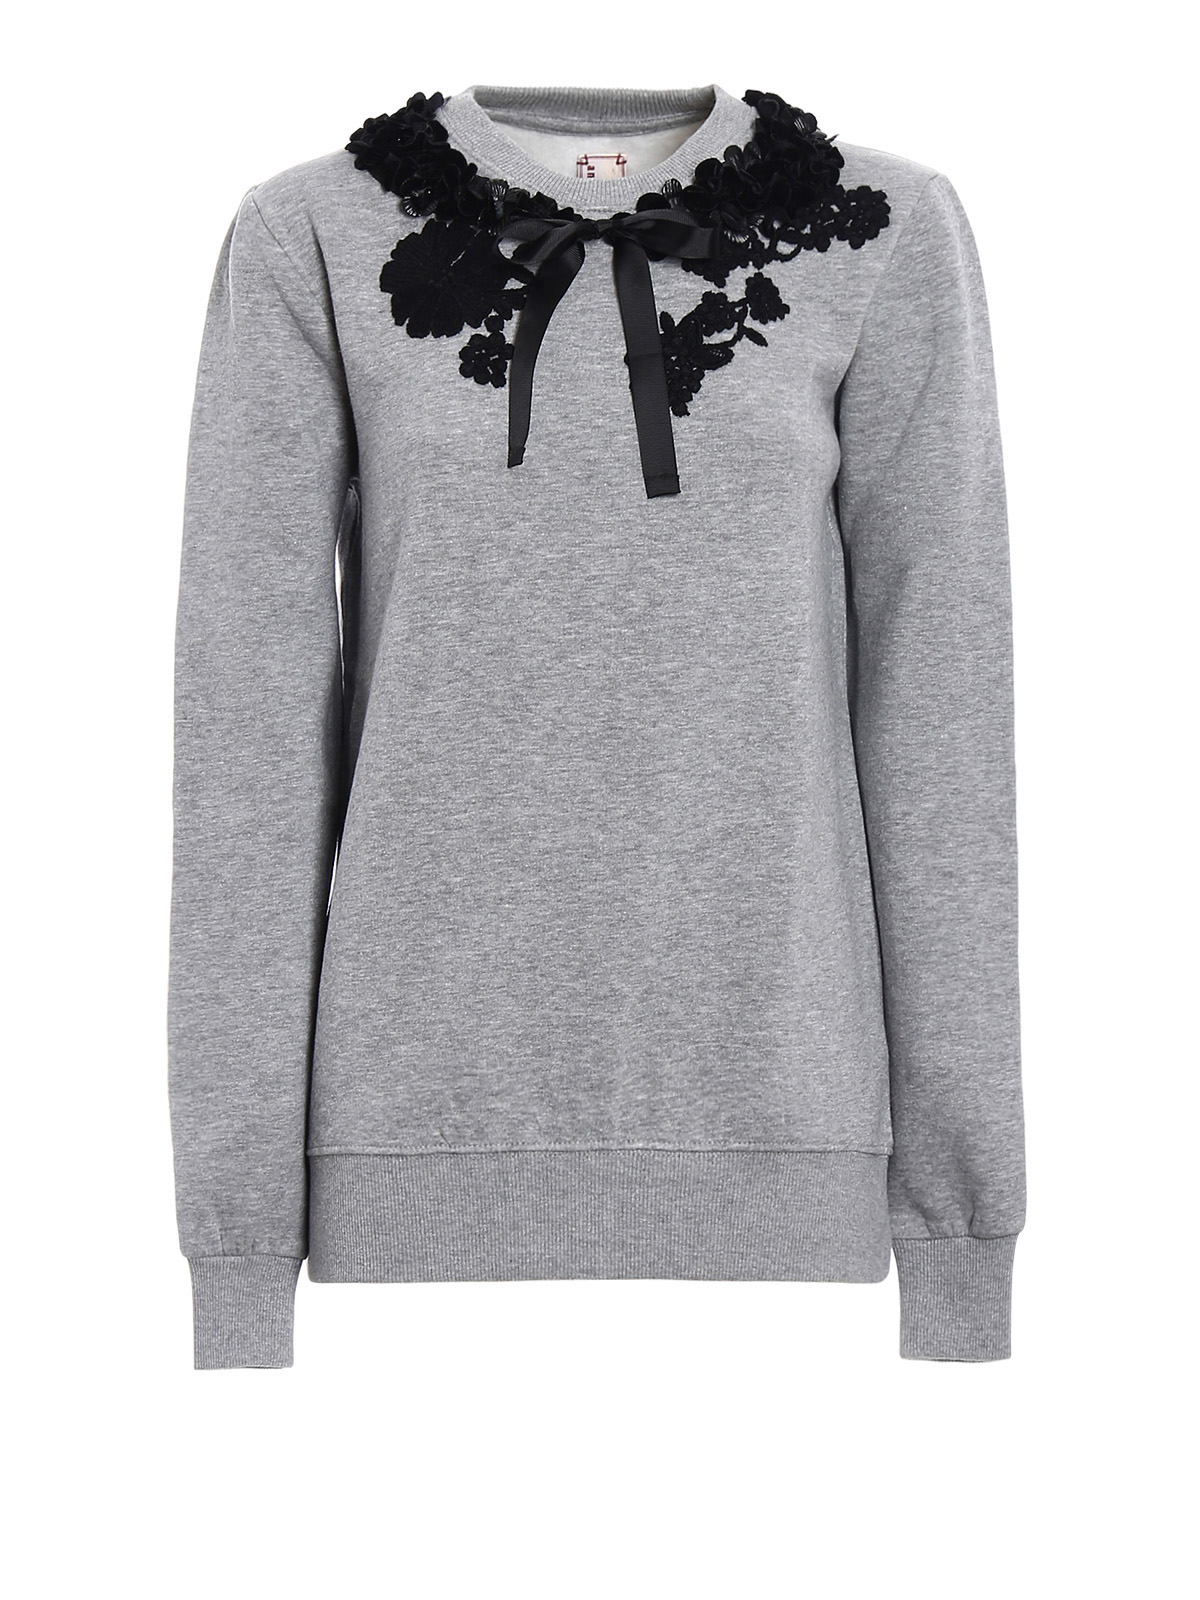 Sweatshirt Sweaters Antonio Cotton Embellished Sweatshirts Marras amp; vqHfYq